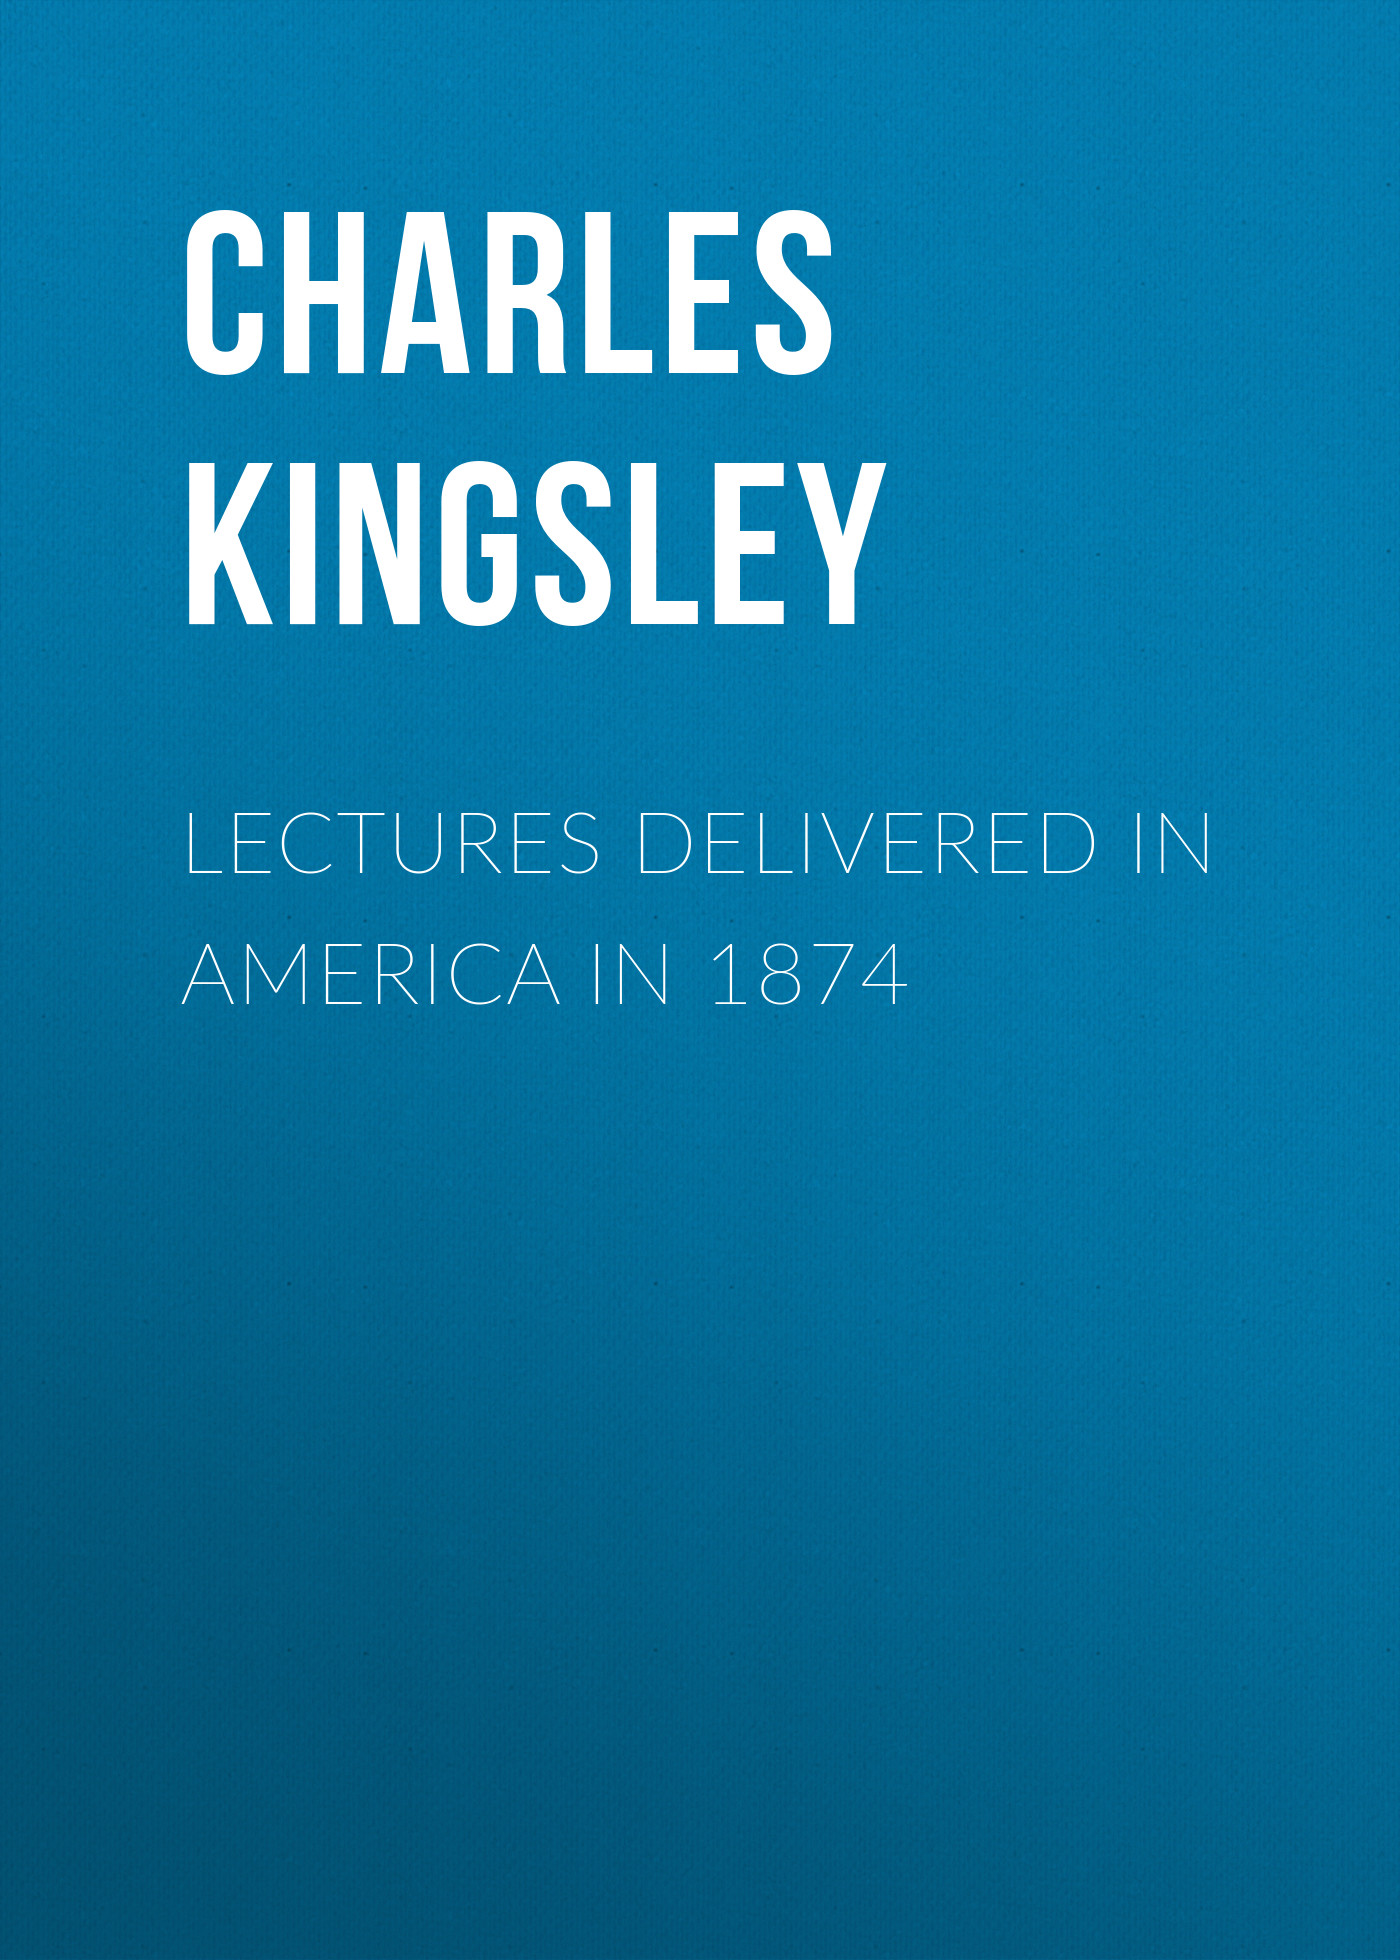 Charles Kingsley Lectures Delivered in America in 1874 henry reuben rose good sense in religion eleven lectures